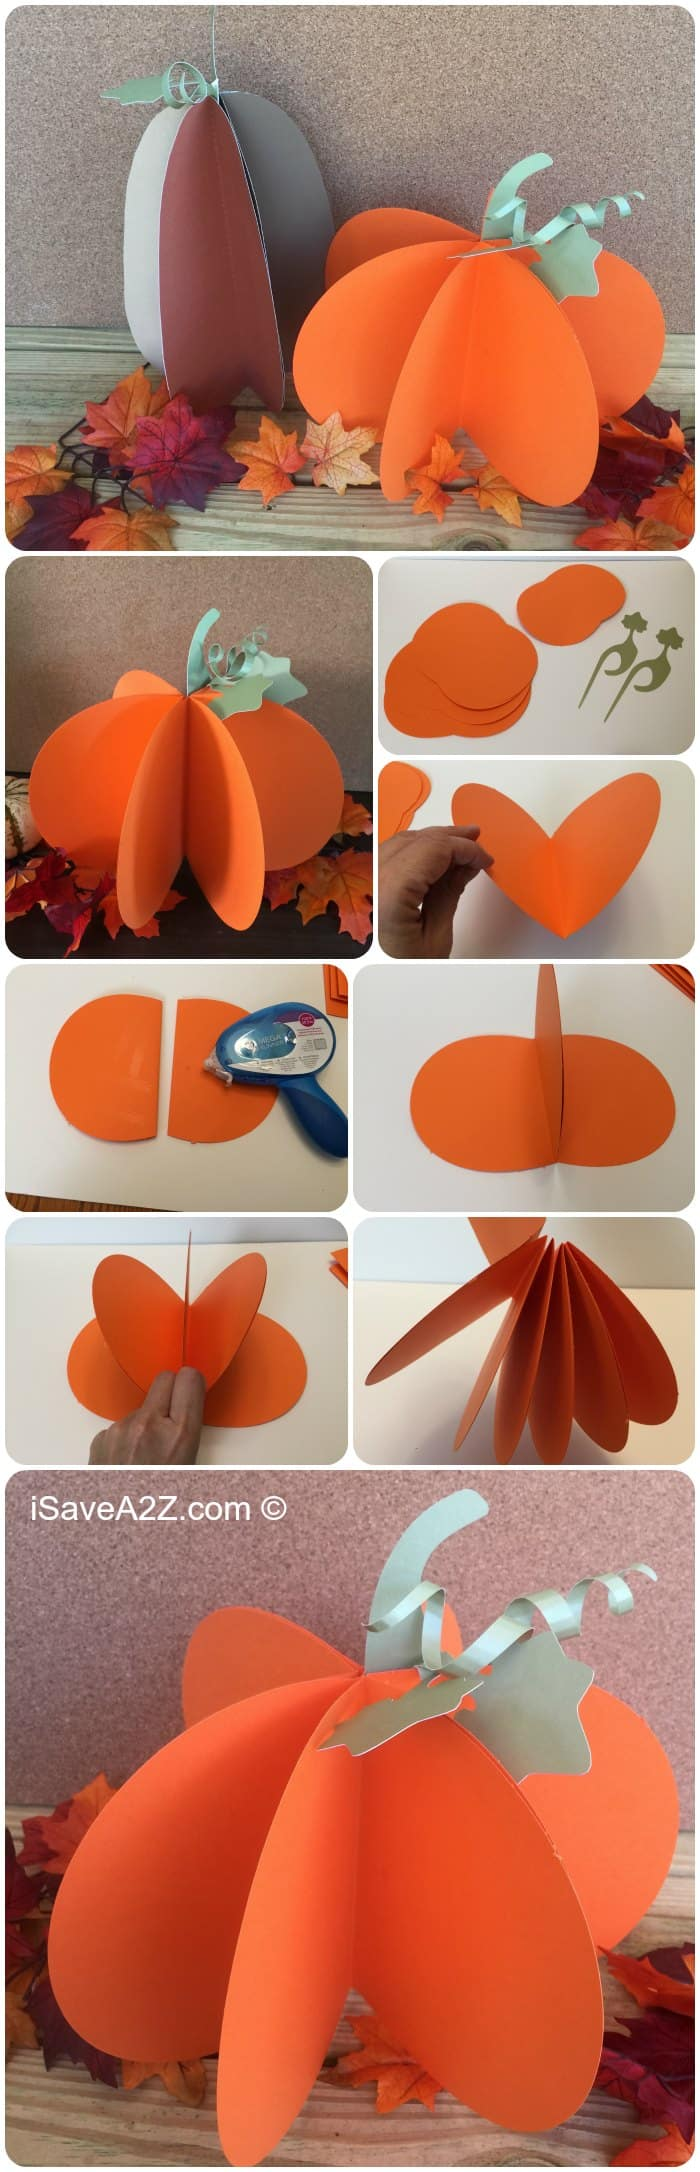 Thanksgiving Day Paper Craft ideas